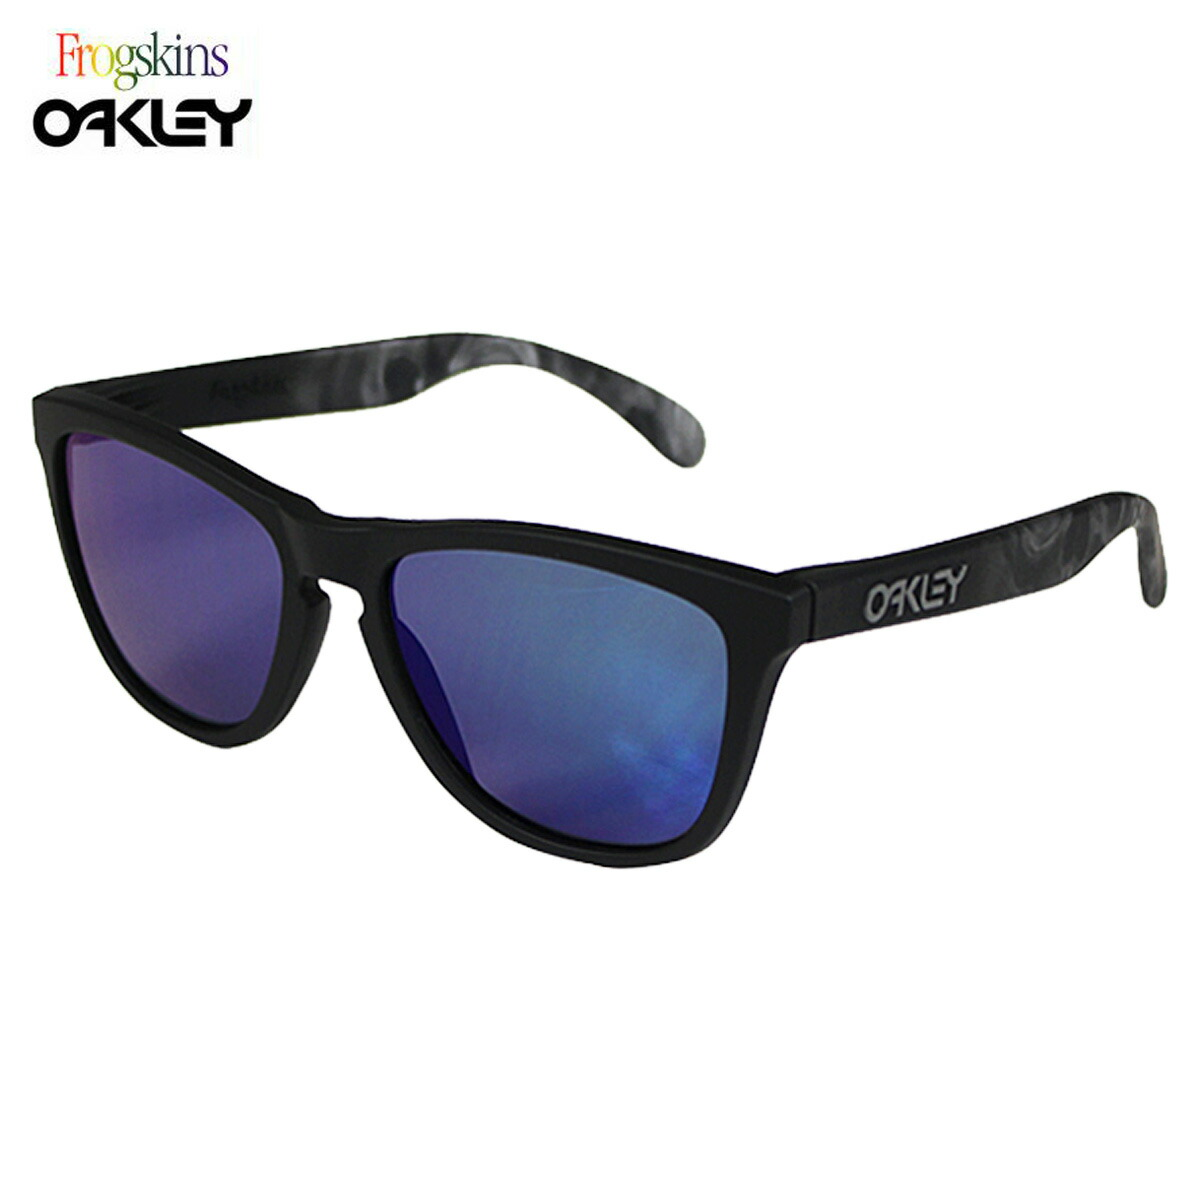 new oakley mens sunglasses  oakley mens Archives